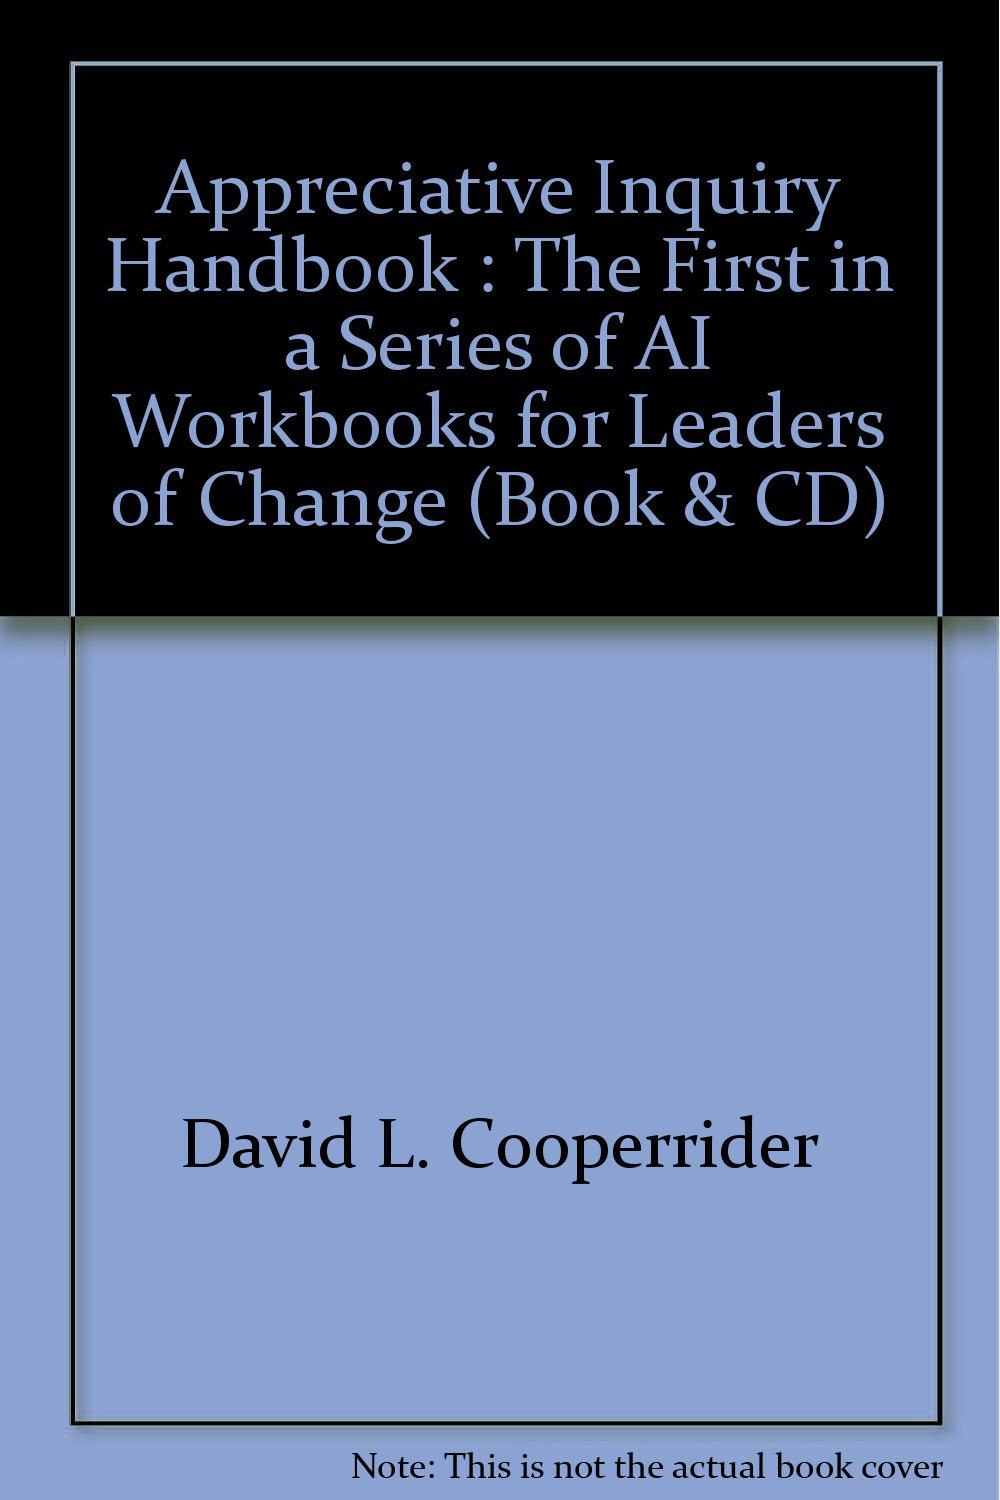 Appreciative Inquiry Handbook : The First in a Series of AI Workbooks for  Leaders of Change (Book & CD): David L. Cooperrider, Diana Whitney,  Jacqueline M. ...